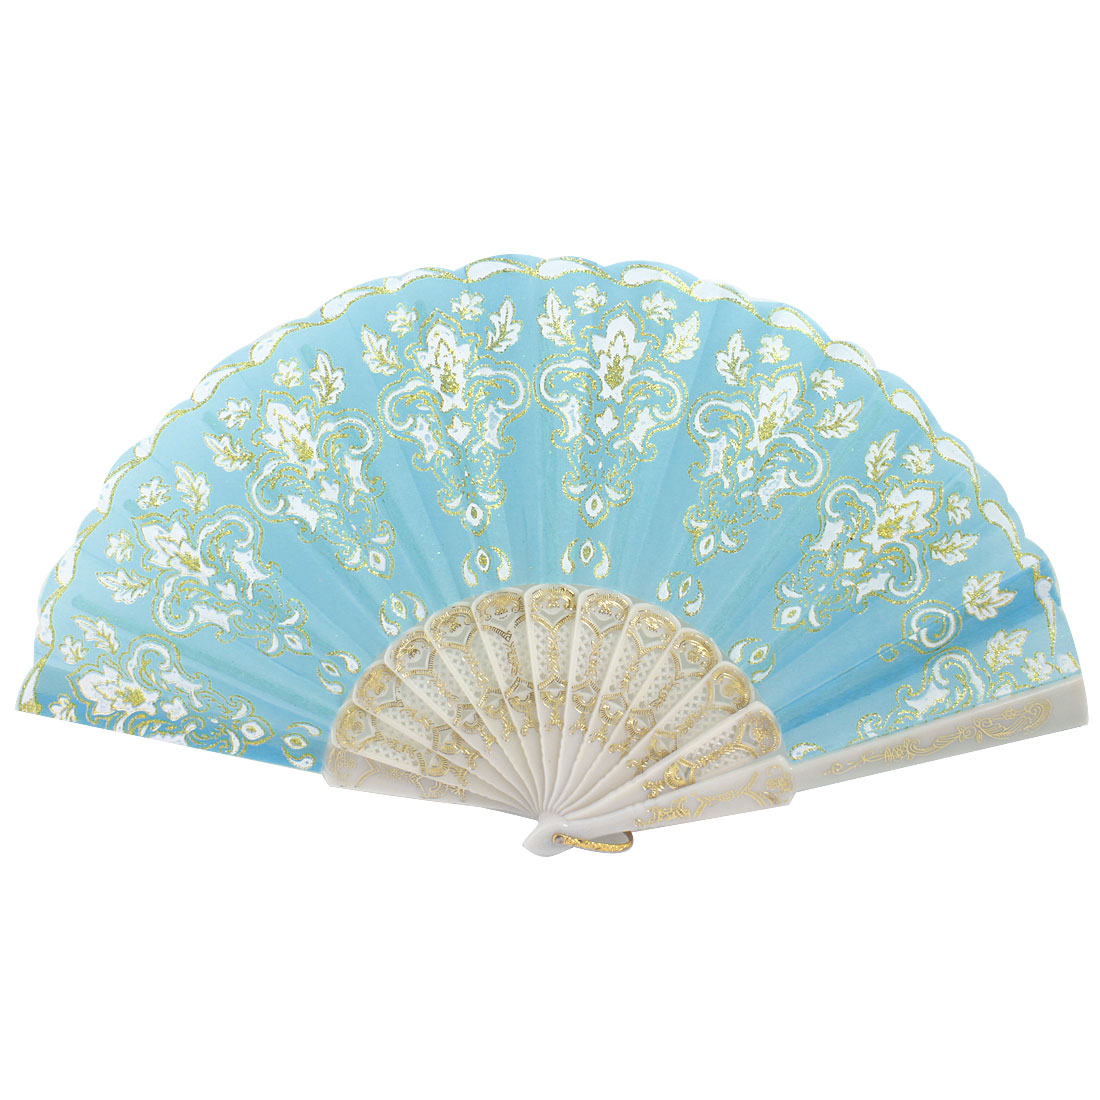 Plastic Rib Gold Tone Glittery Powder Detail Flower Pattern Foldable Hand Fan Teal White